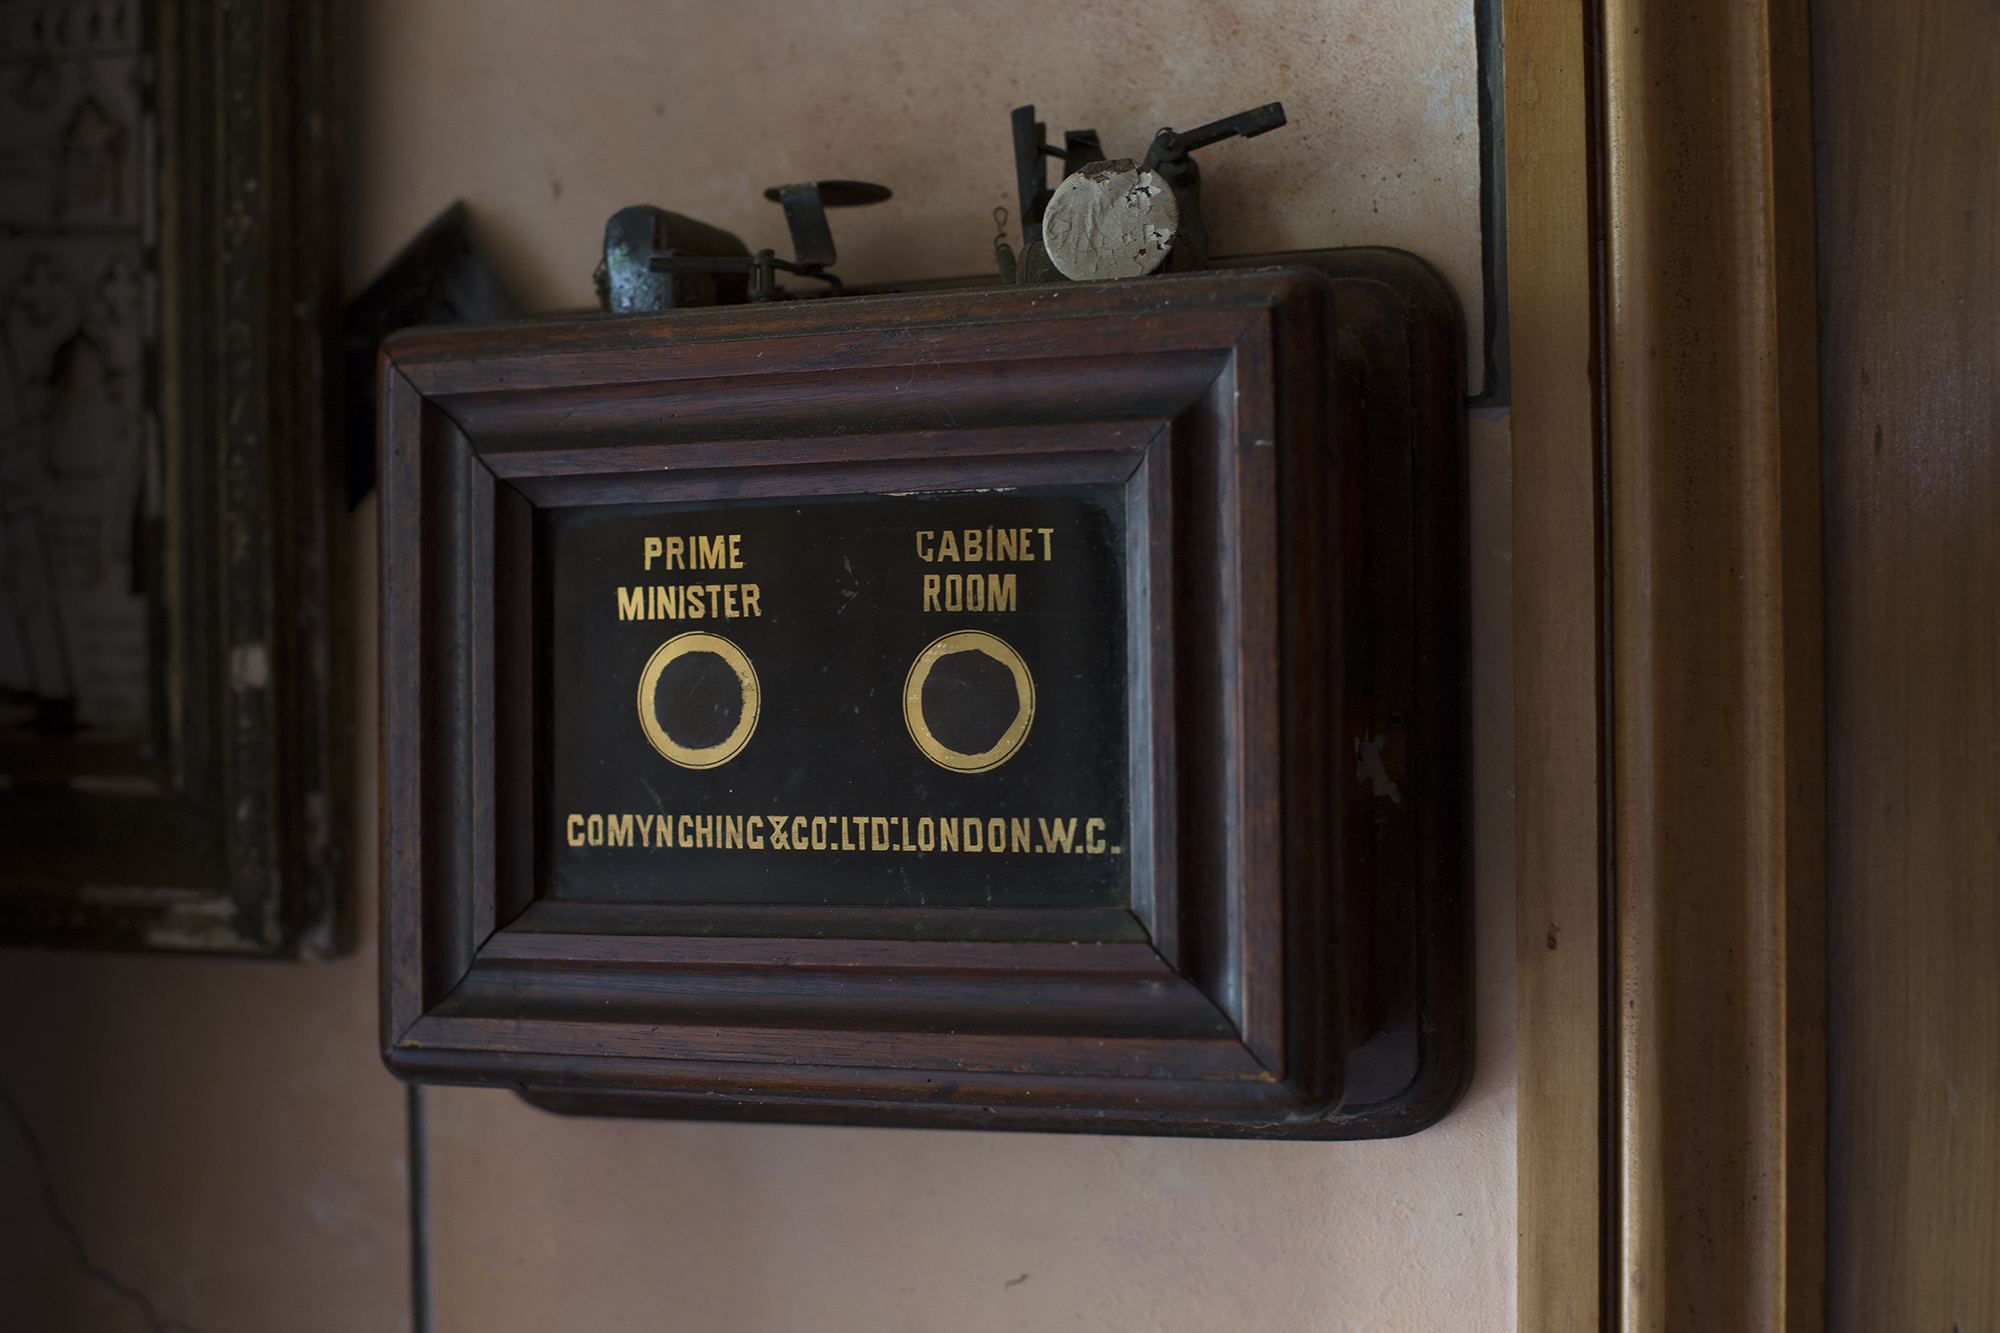 A souvenir from his time at No.10 Downing Street, the bell box in the cabinet secarateries room.